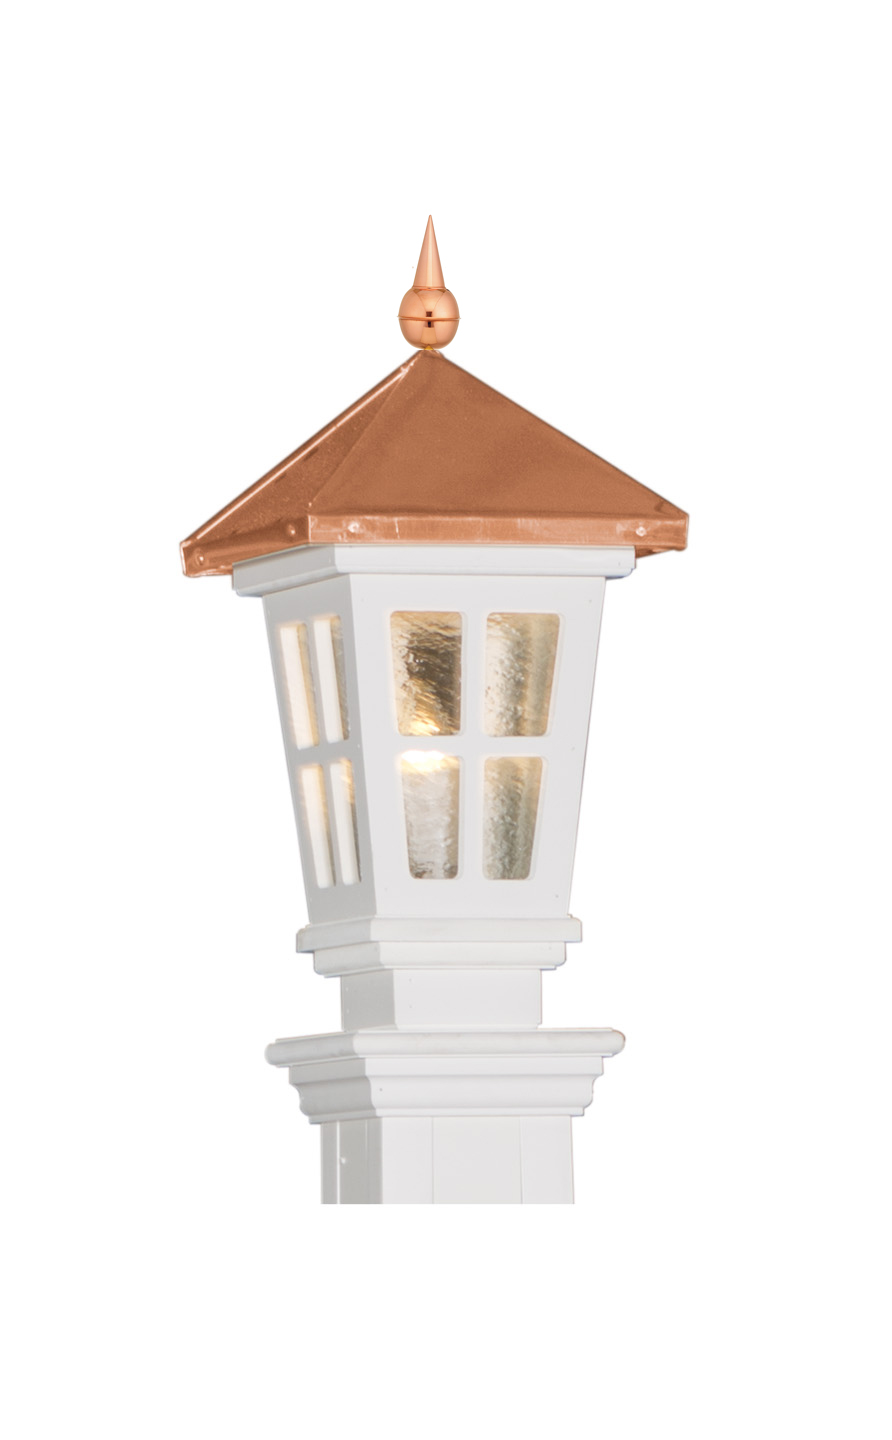 COPPER & VINYL COLONIAL POST LANTERN - LARGE (LNCL-LG)